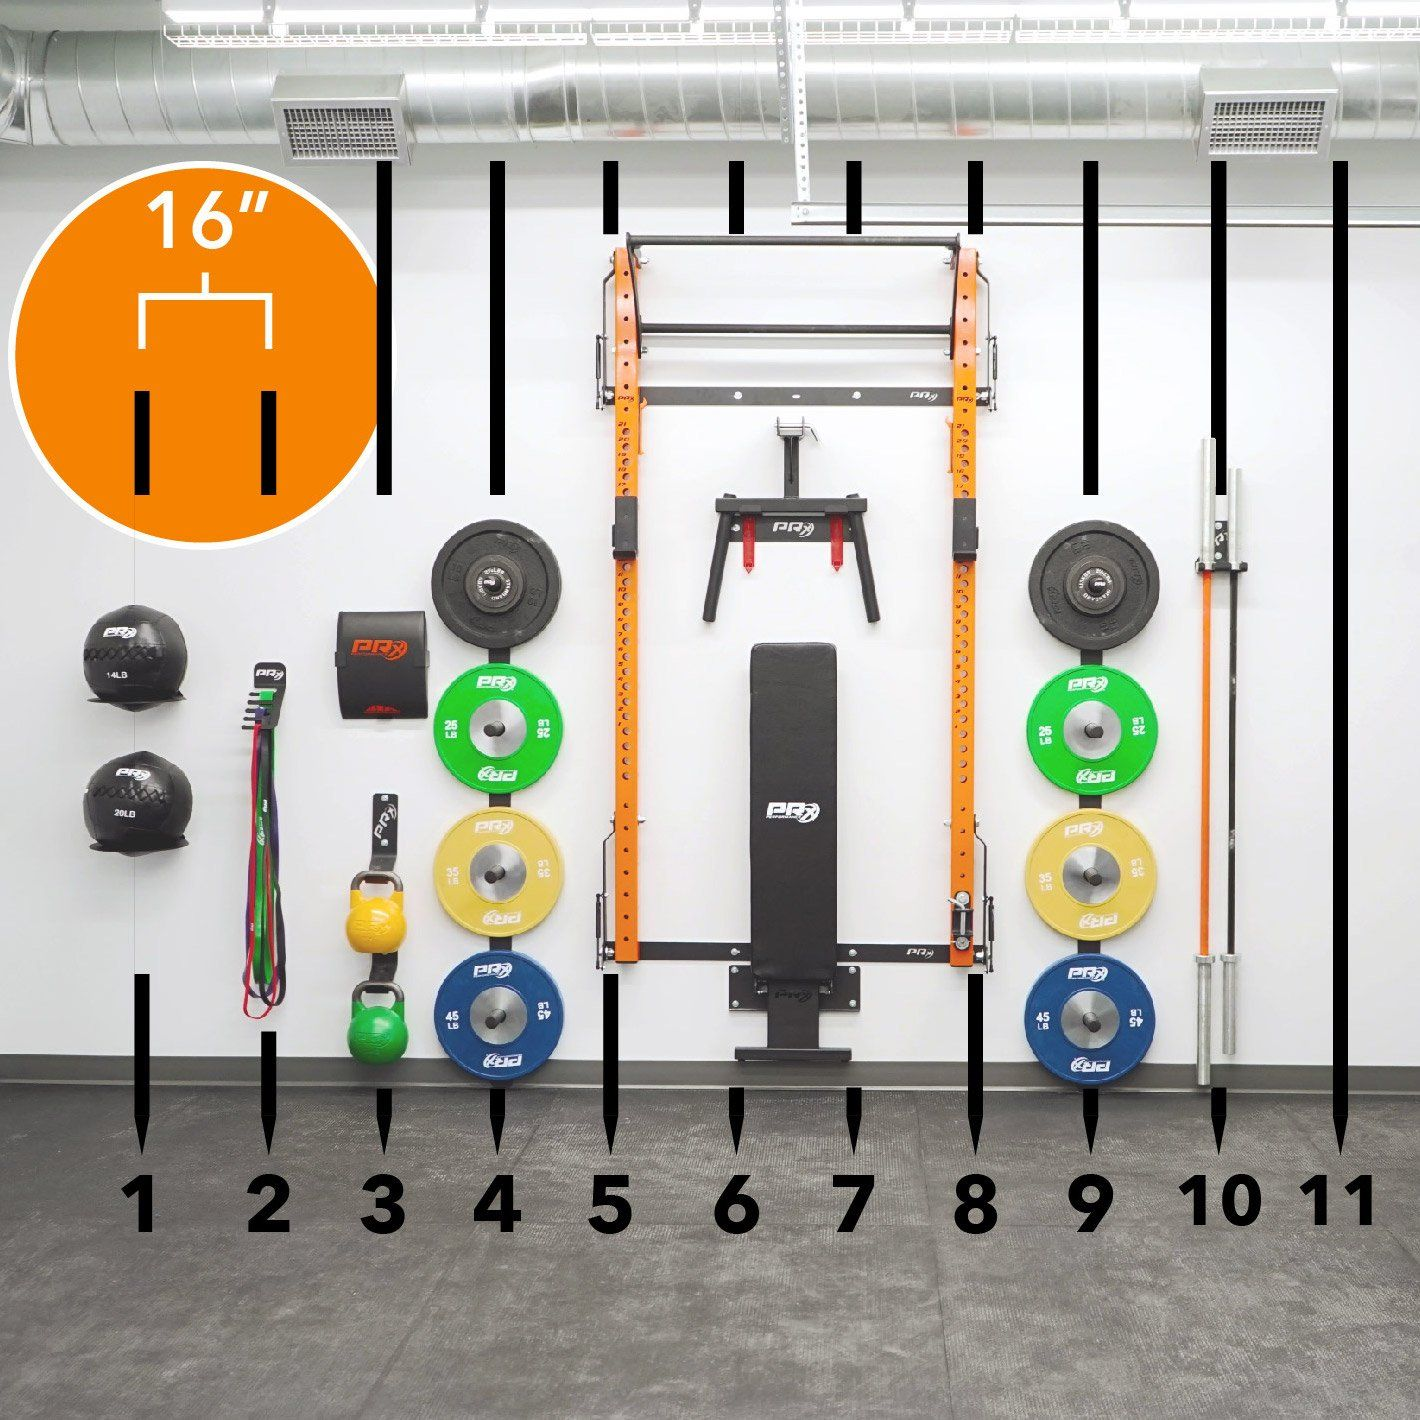 Swole Mates His Hers Profile Pro Elite Package With Folding Bench Folding Bench Wall Balls Ball Storage